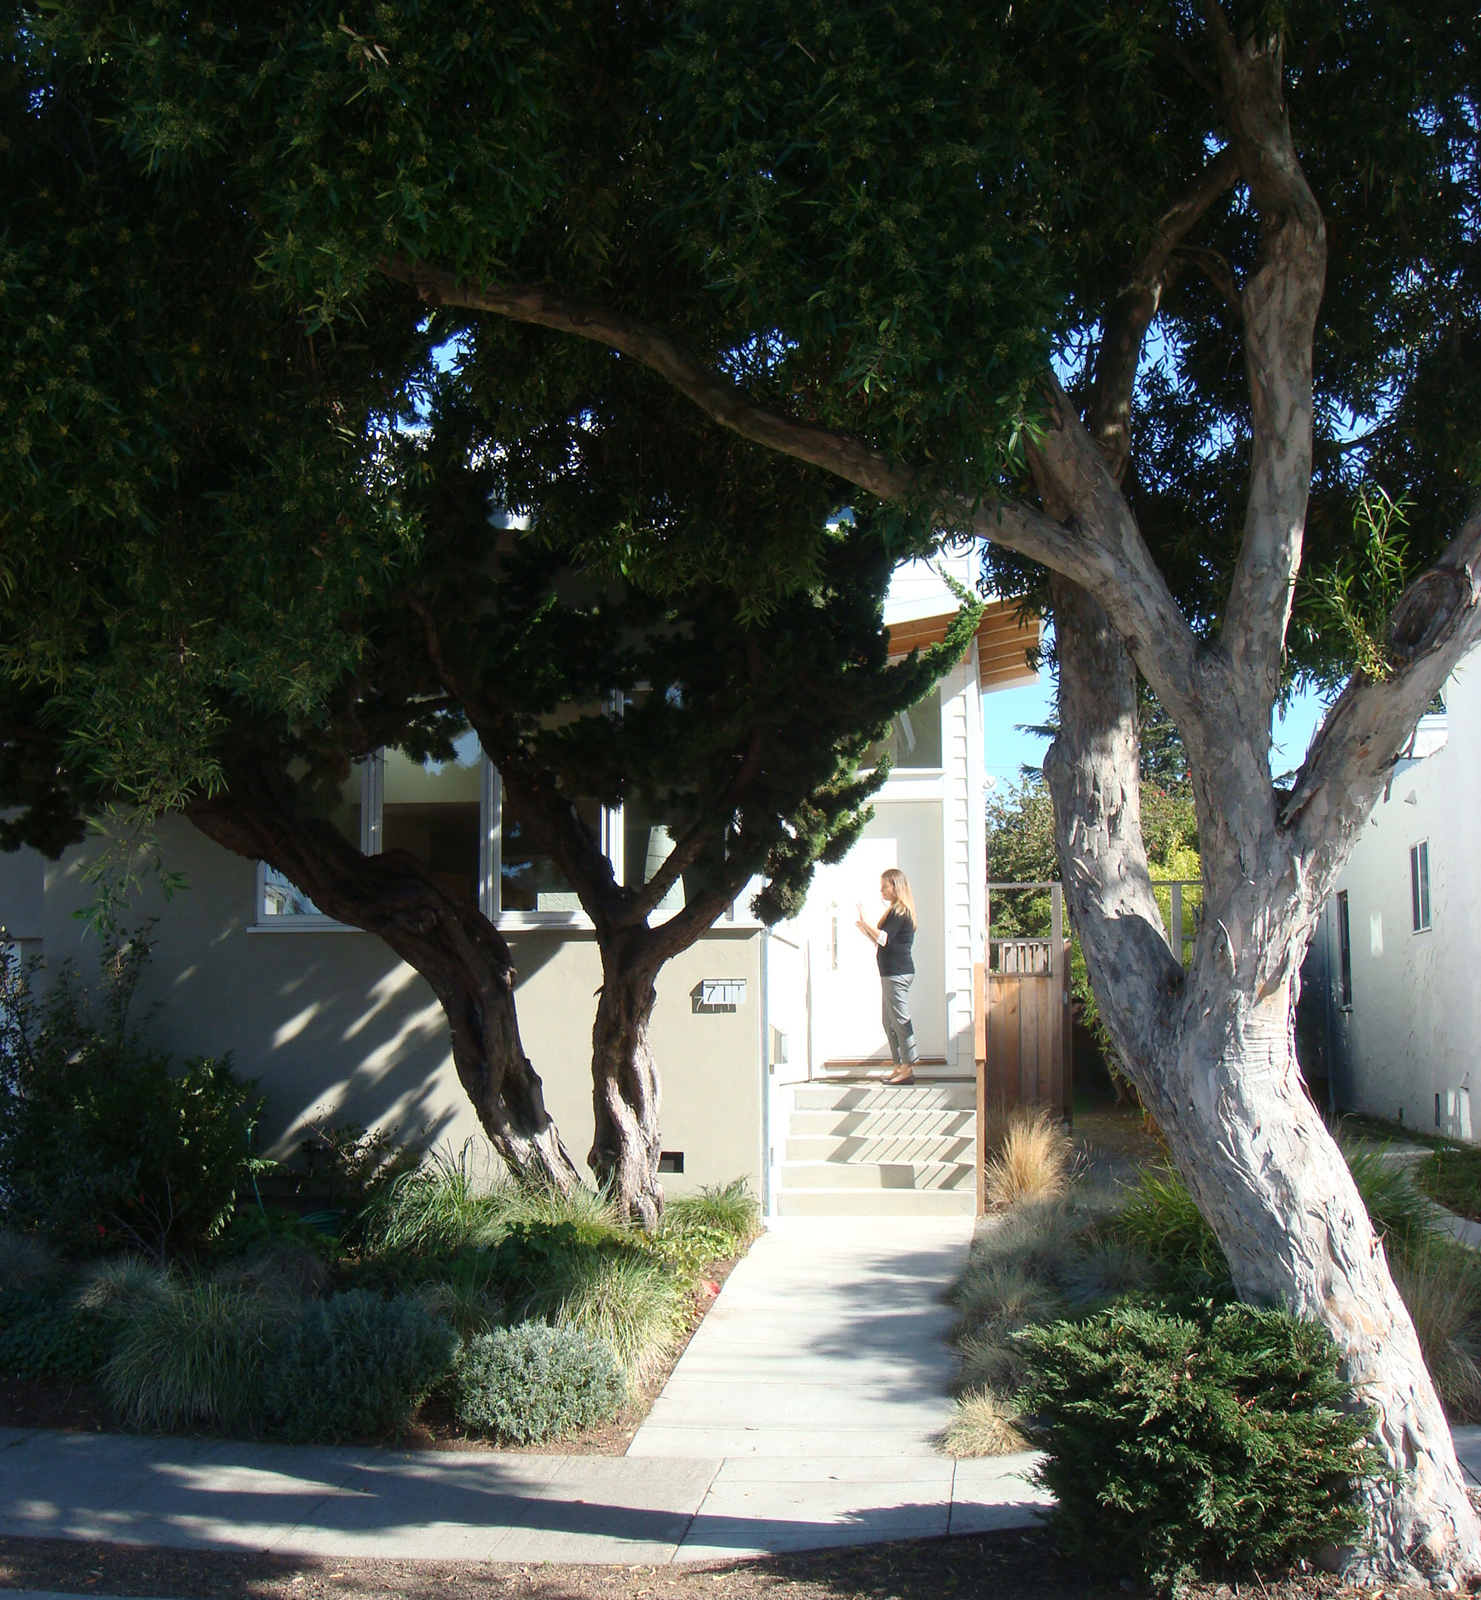 The home is situated on a quiet residential street in Albany, California. Most of the homes in the area are single-story bungalows built in the 1920s and 1930s. The residents, Ian MacLeod, Beatrice Moran, and their two children, were drawn to the location